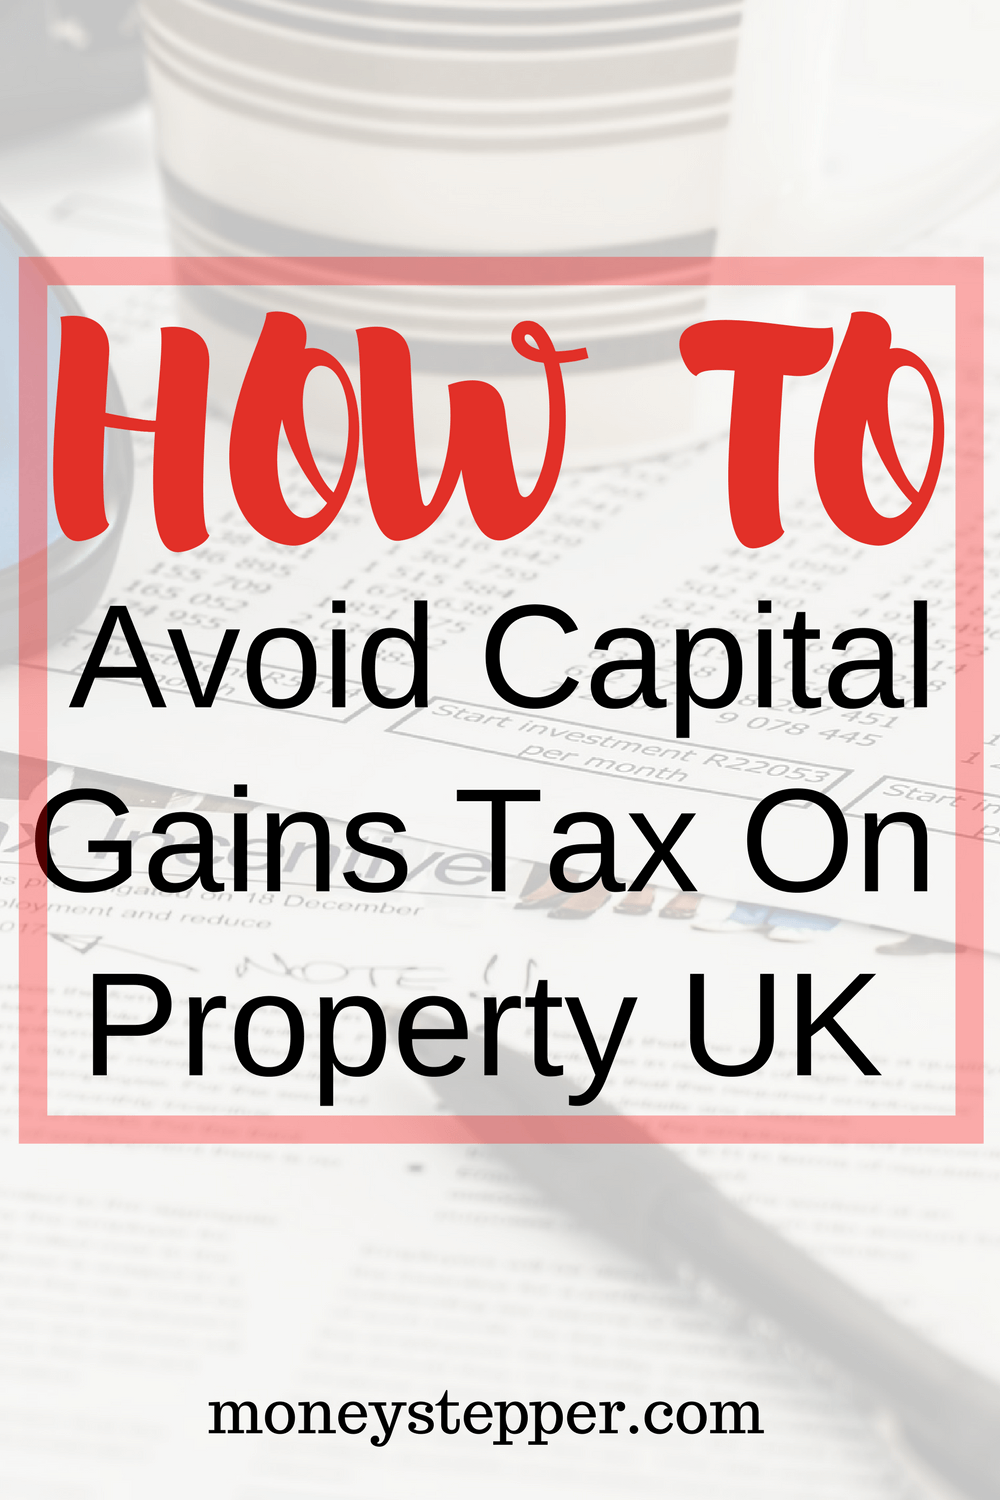 to avoid capital gains tax on property uk